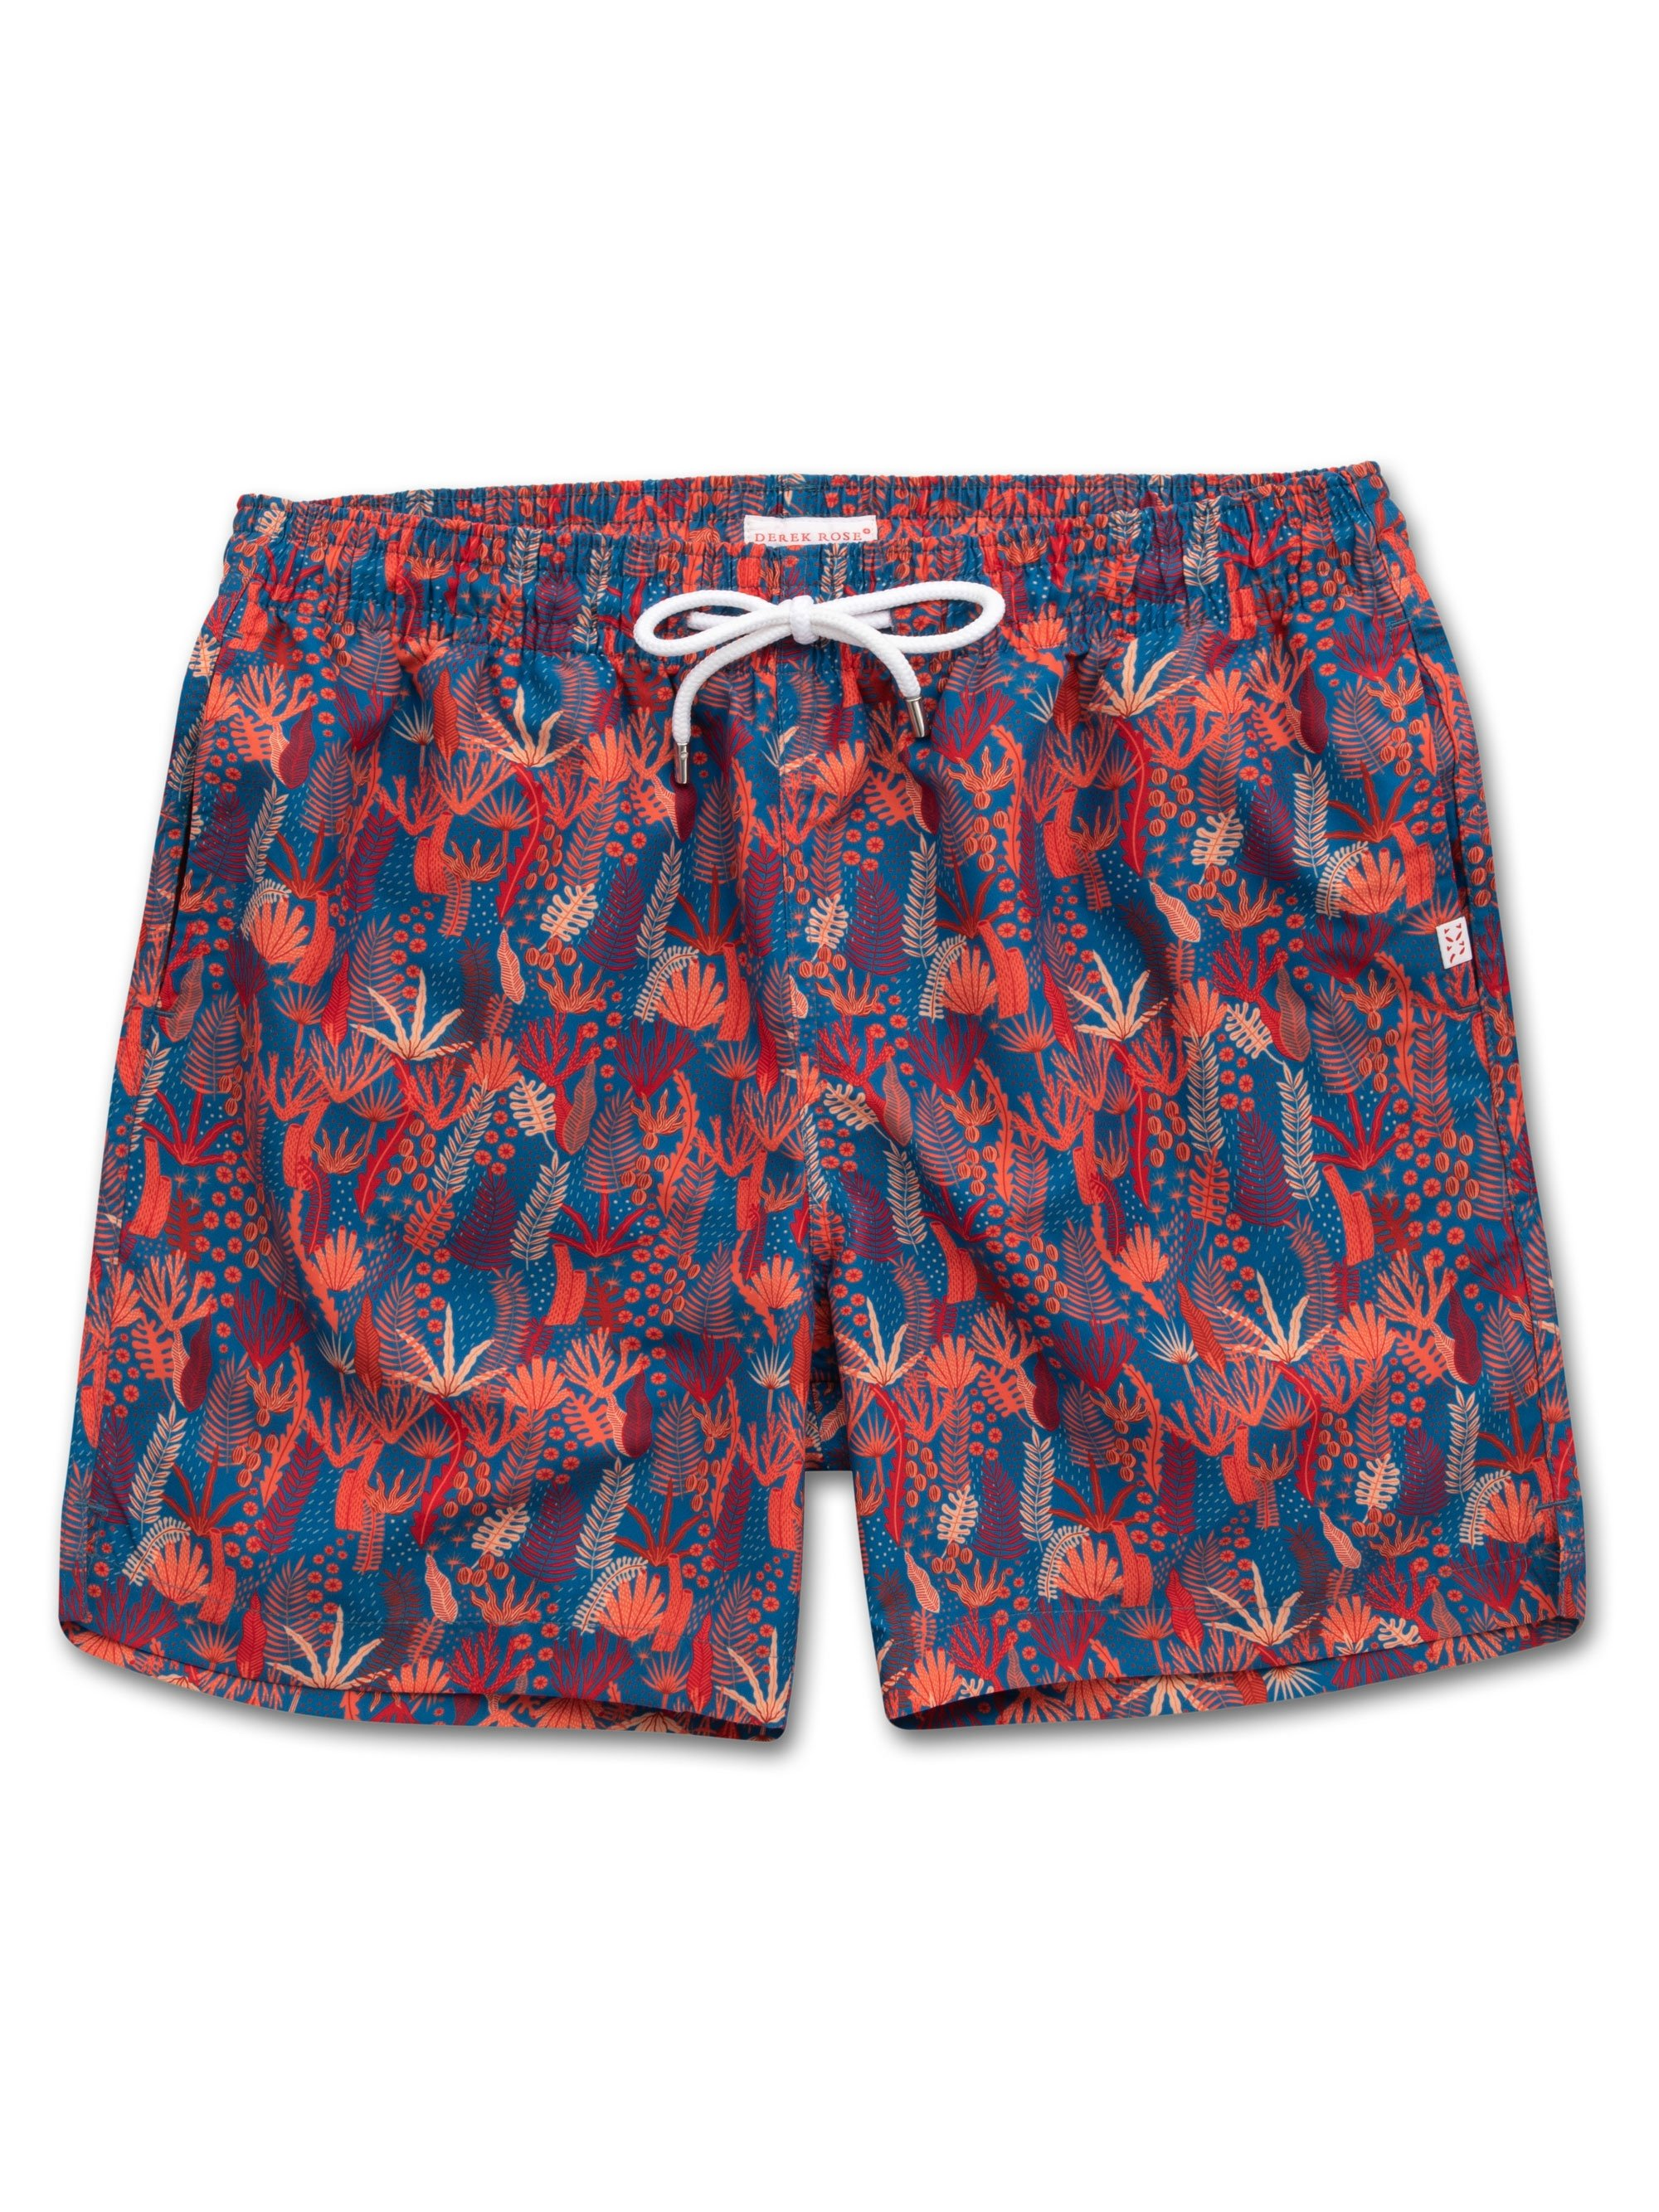 Men's Classic Fit Swim Shorts Maui 18 Ocean